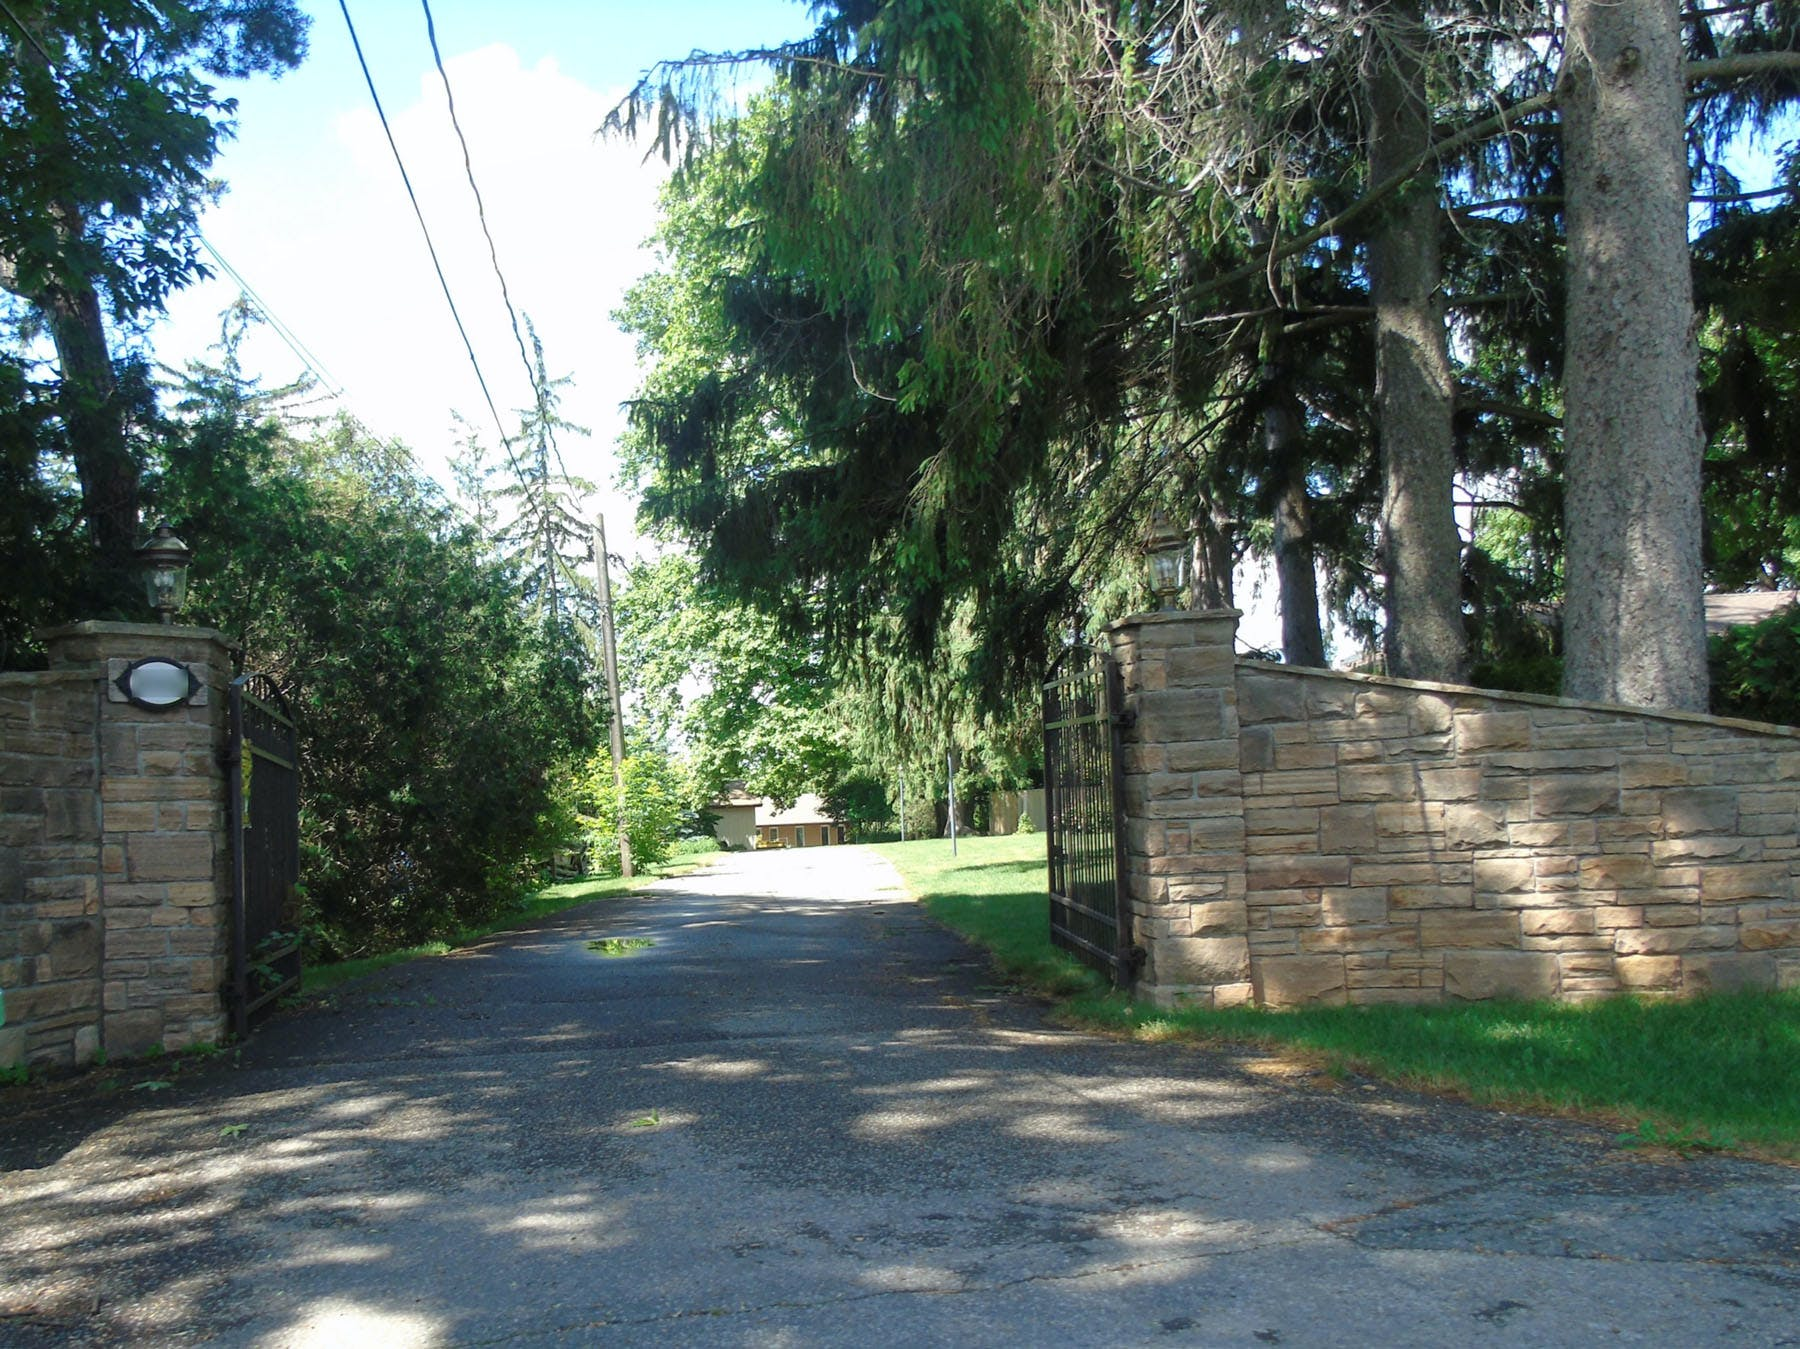 Residential stone entryway in Erindale Village